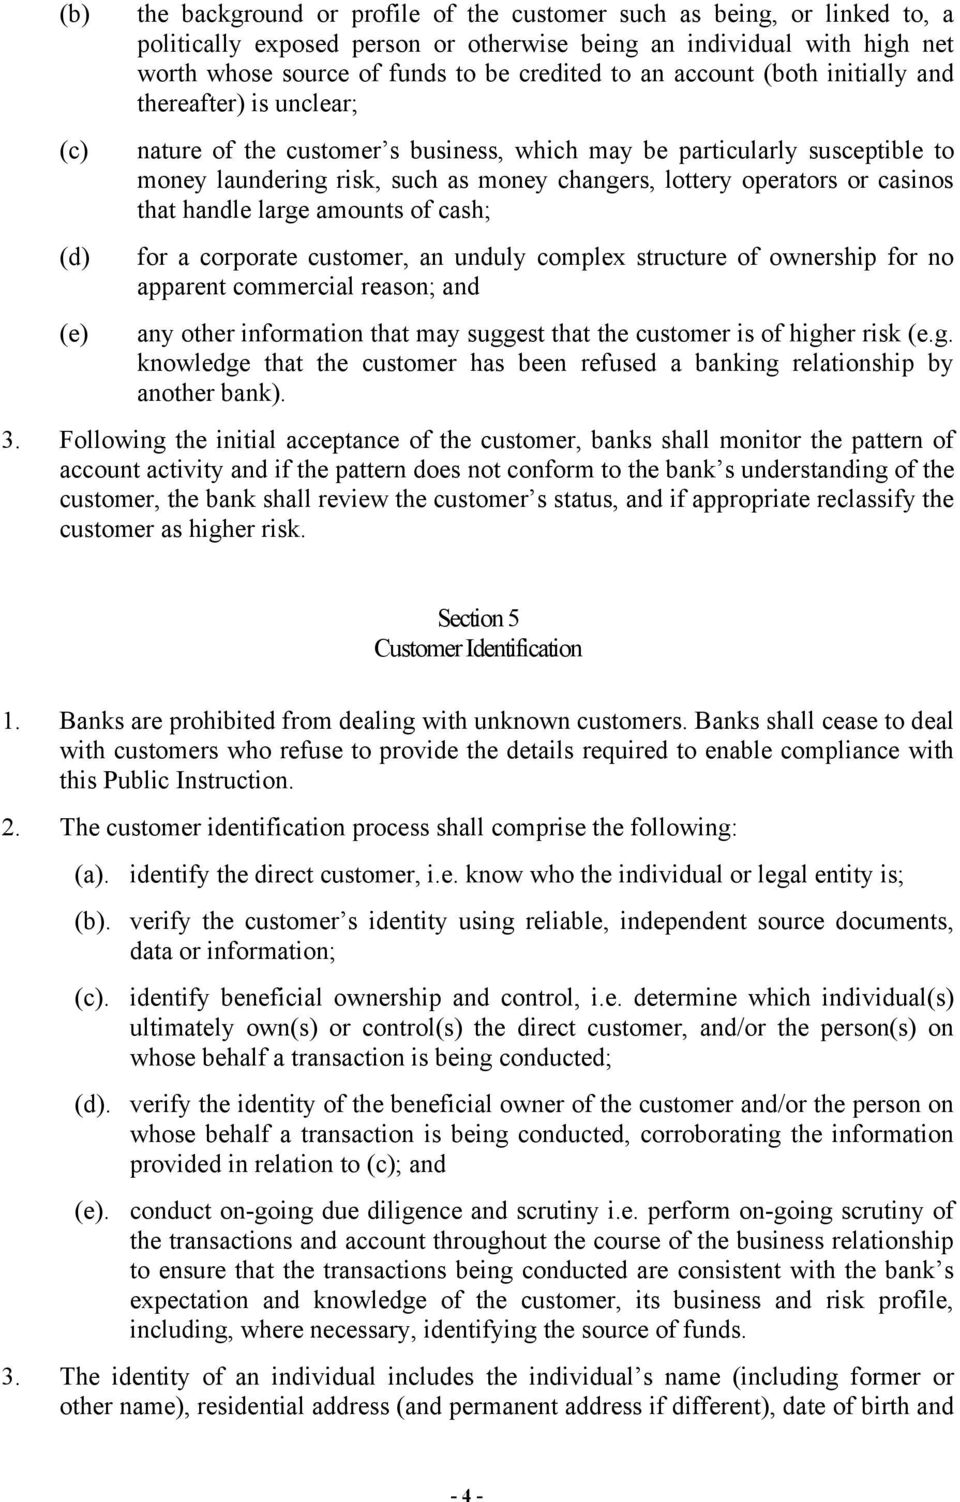 operators or casinos that handle large amounts of cash; for a corporate customer, an unduly complex structure of ownership for no apparent commercial reason; and any other information that may